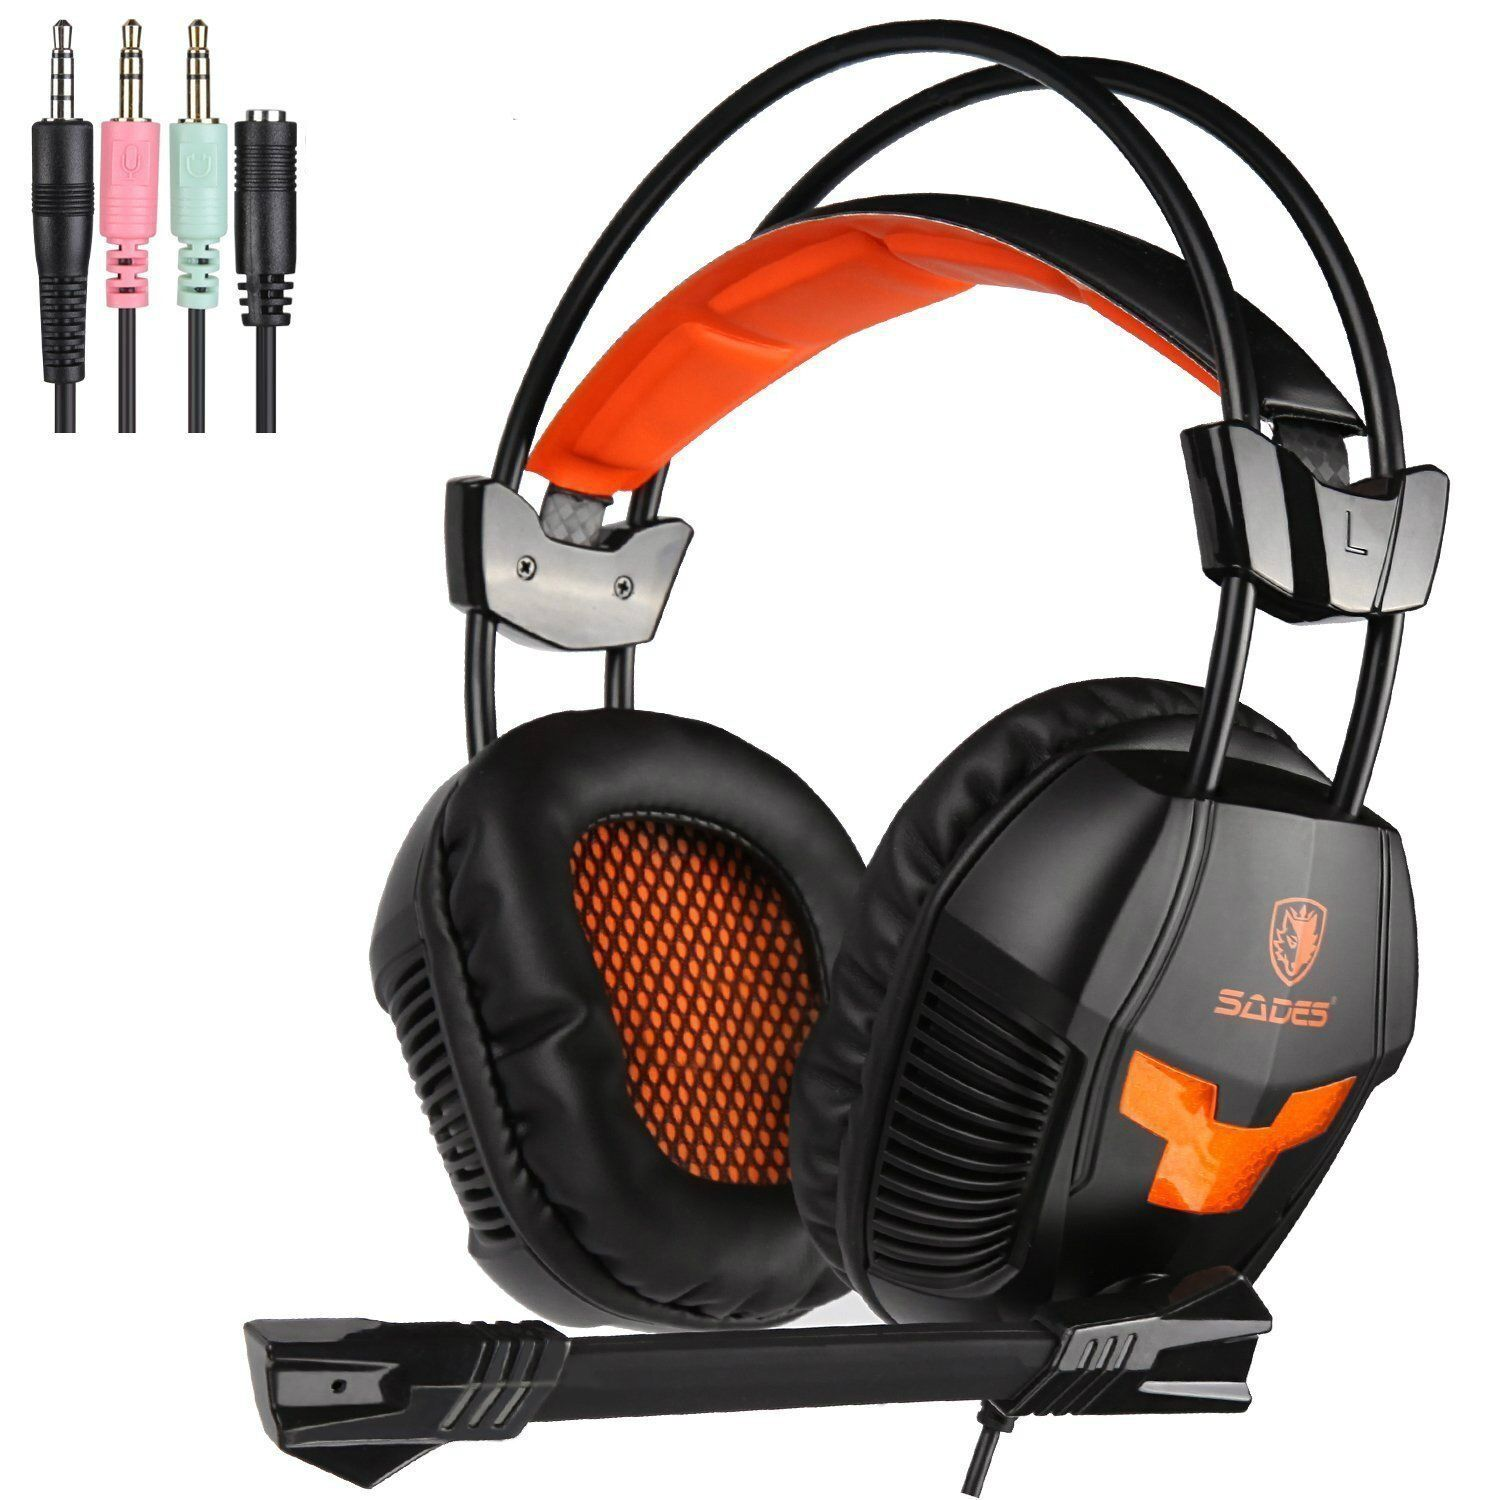 Sades SA921 Universal Gaming Headset Headphone With Mic for PS4 Xbox360 Xbox one